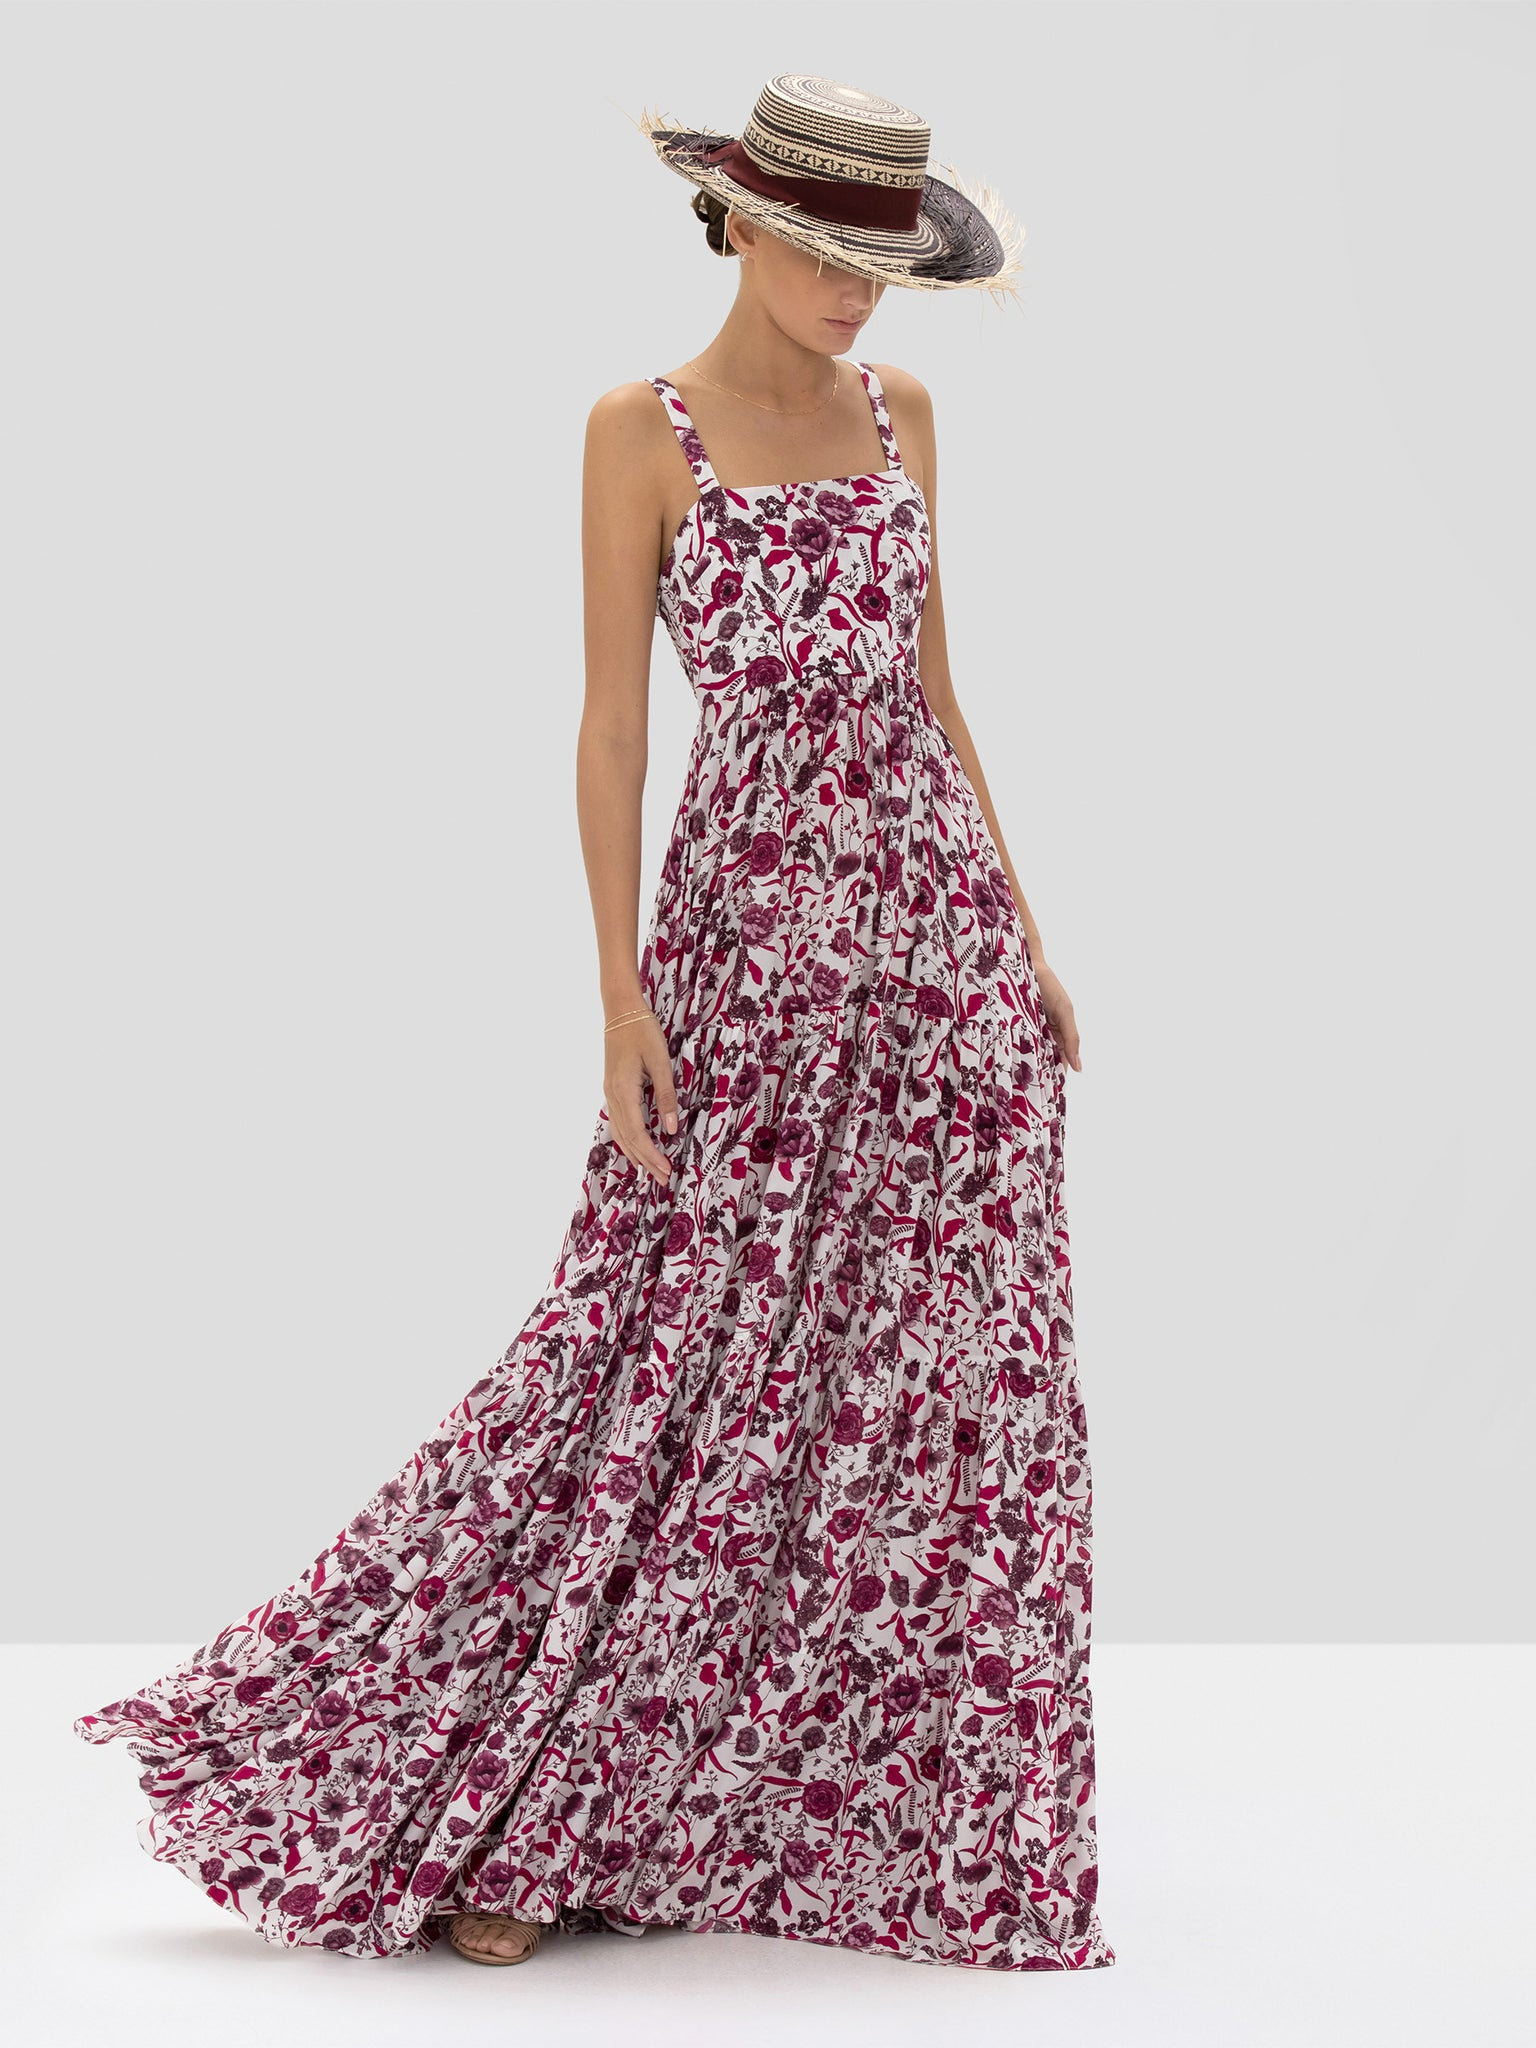 The Zofia Dress in Berry Floral from the Spring Summer 2020